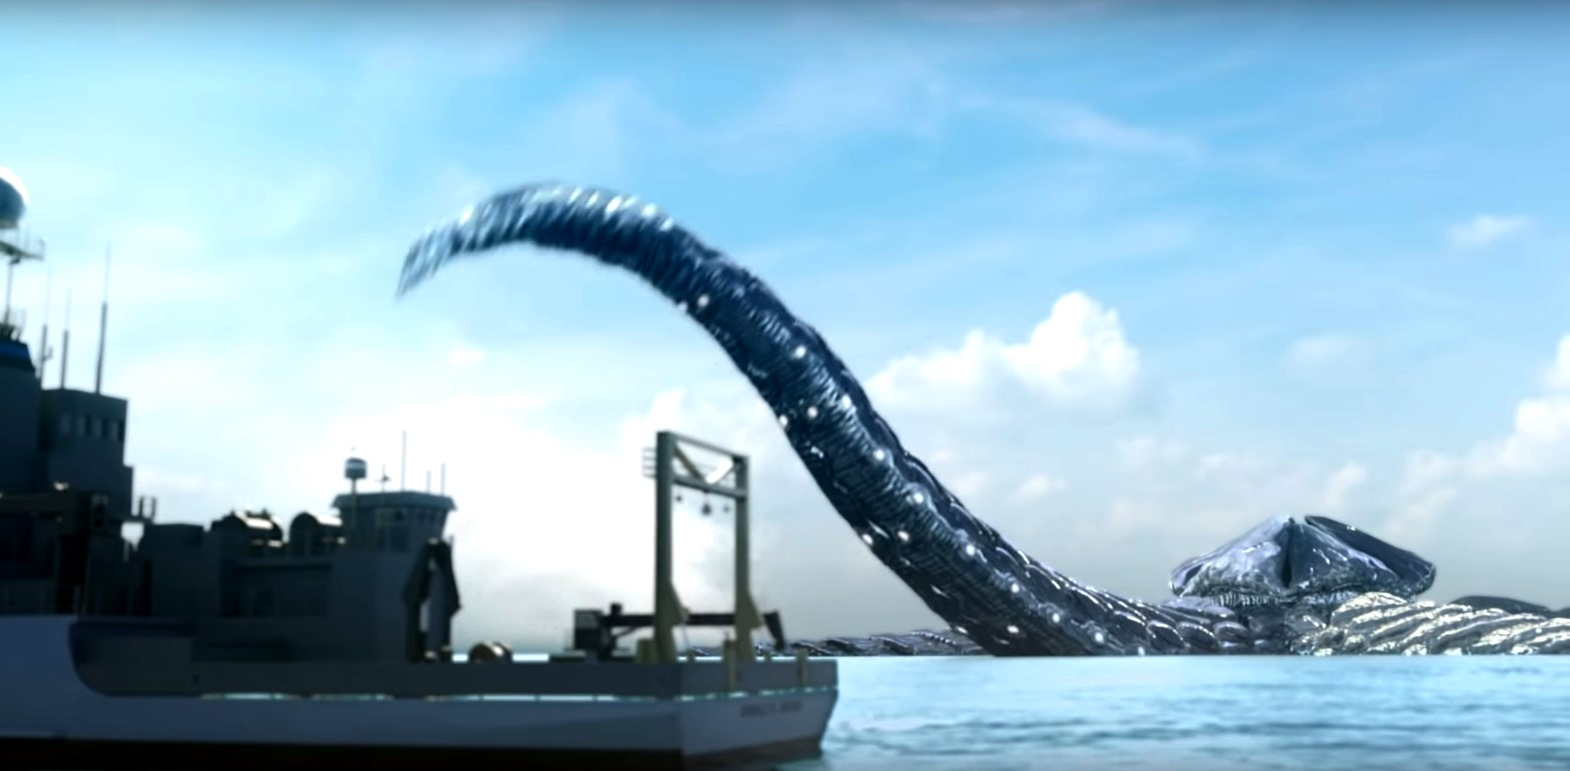 The Kaiju rises from the ocean floor in Monster Island (2019)